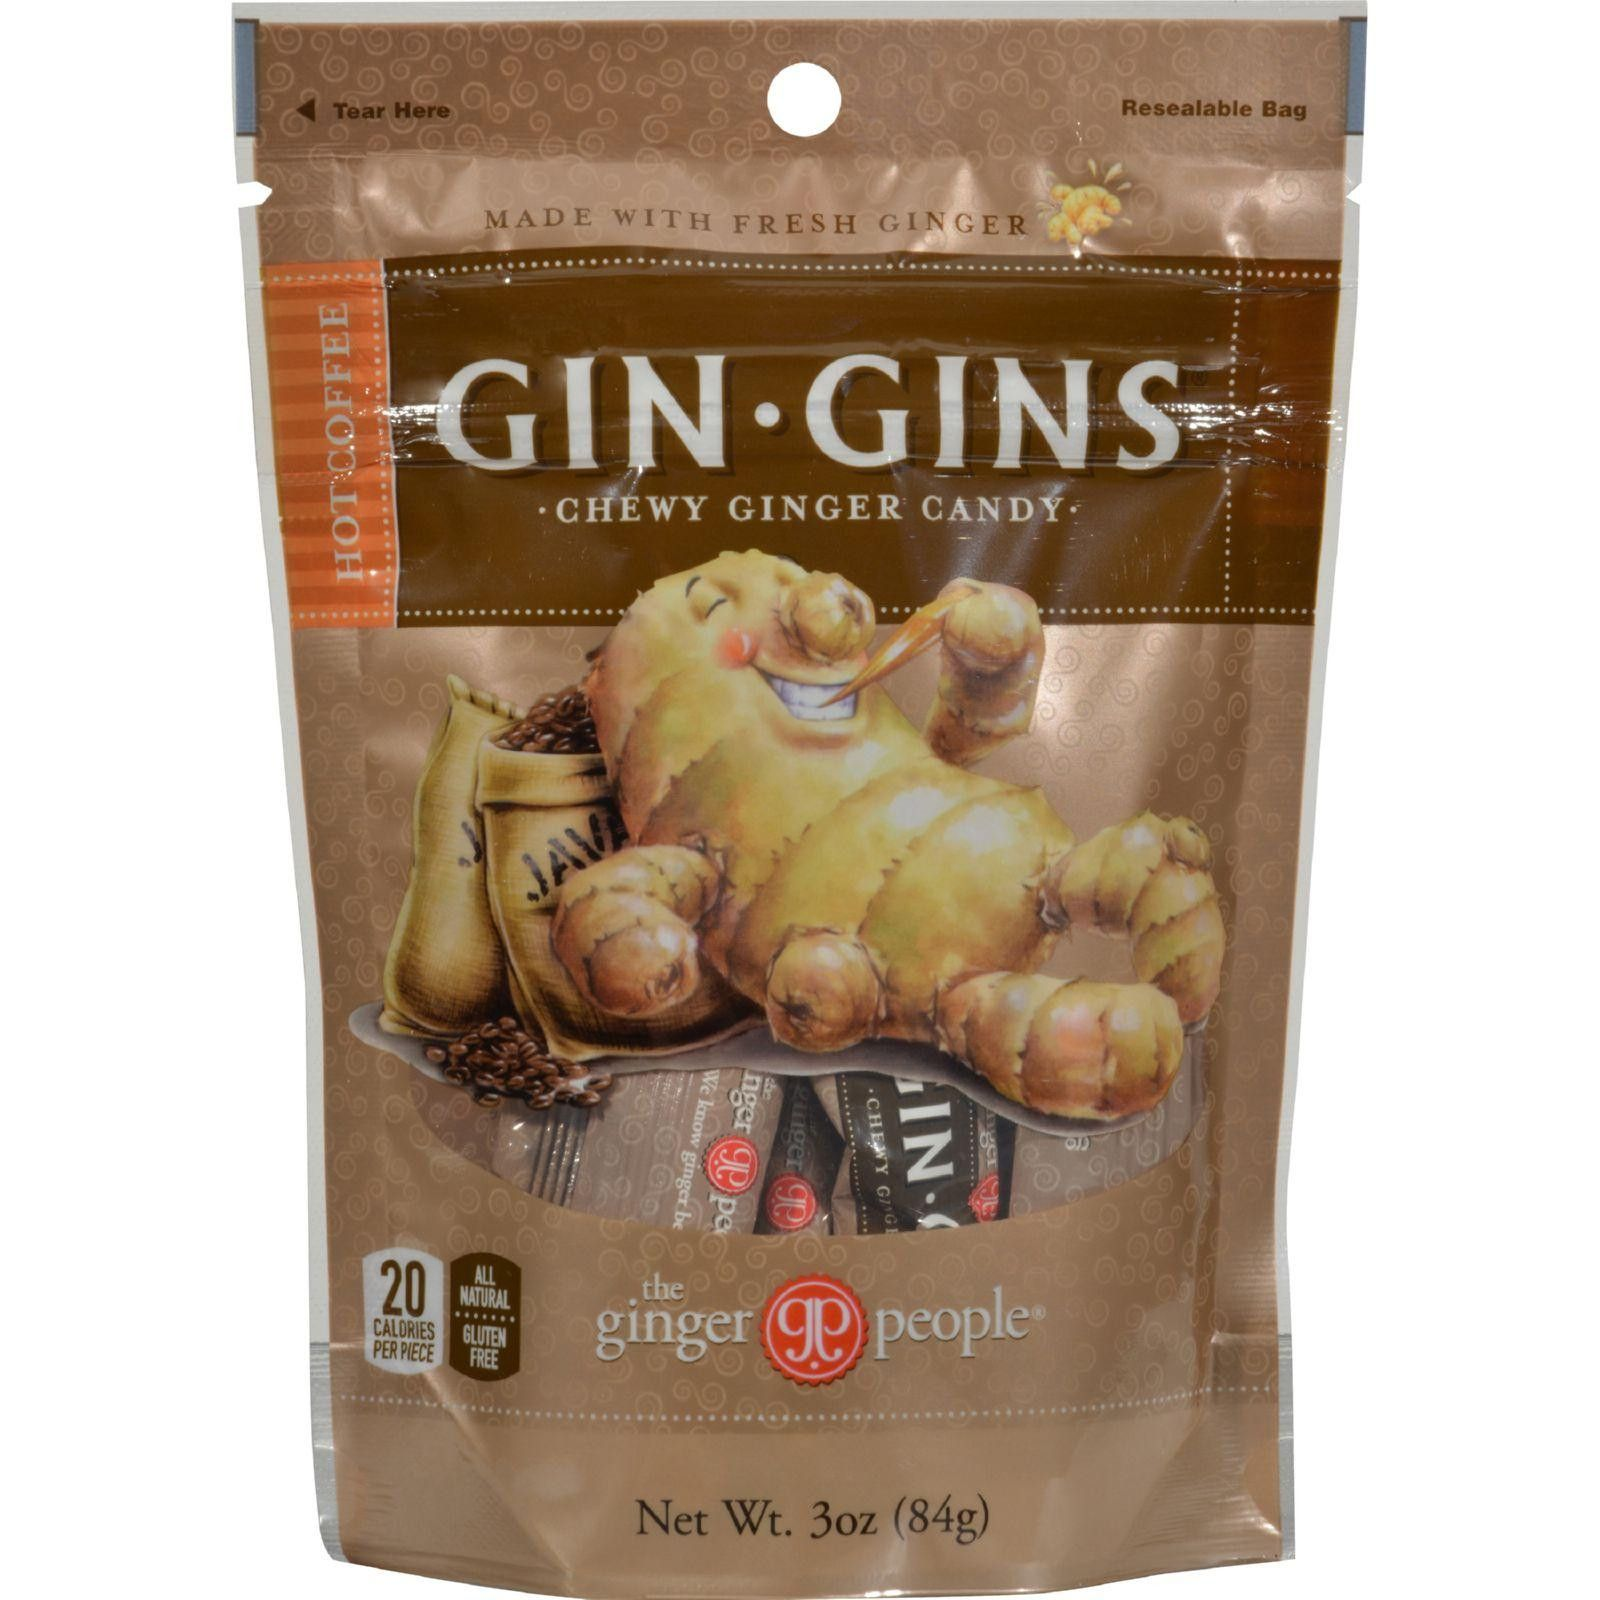 Ginger people gingins chewy hot coffee bags case of 24